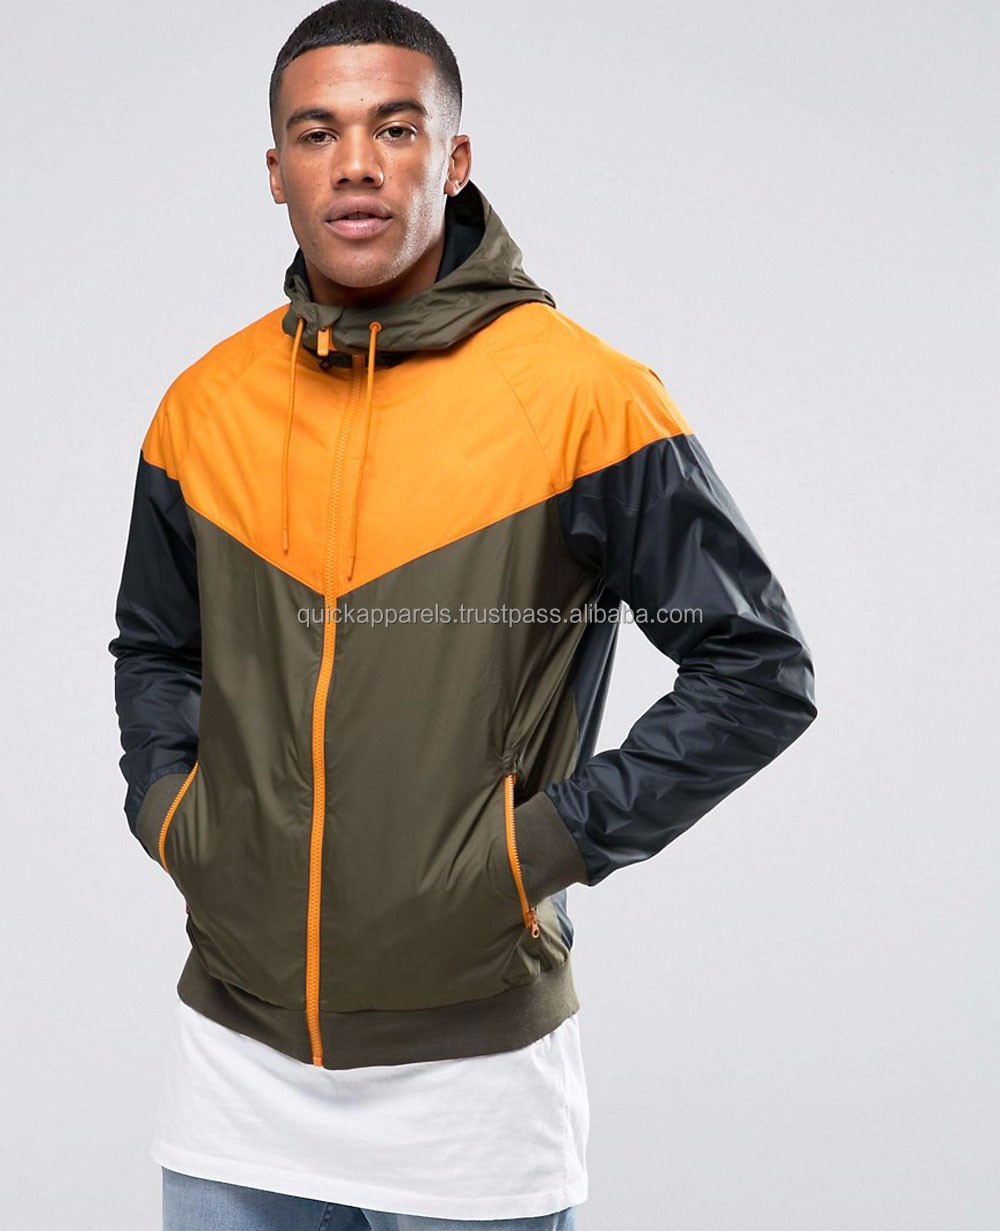 new product wholesale clothing apparel & fashion jackets men casual windbreaker insulated soft shell jacket mens